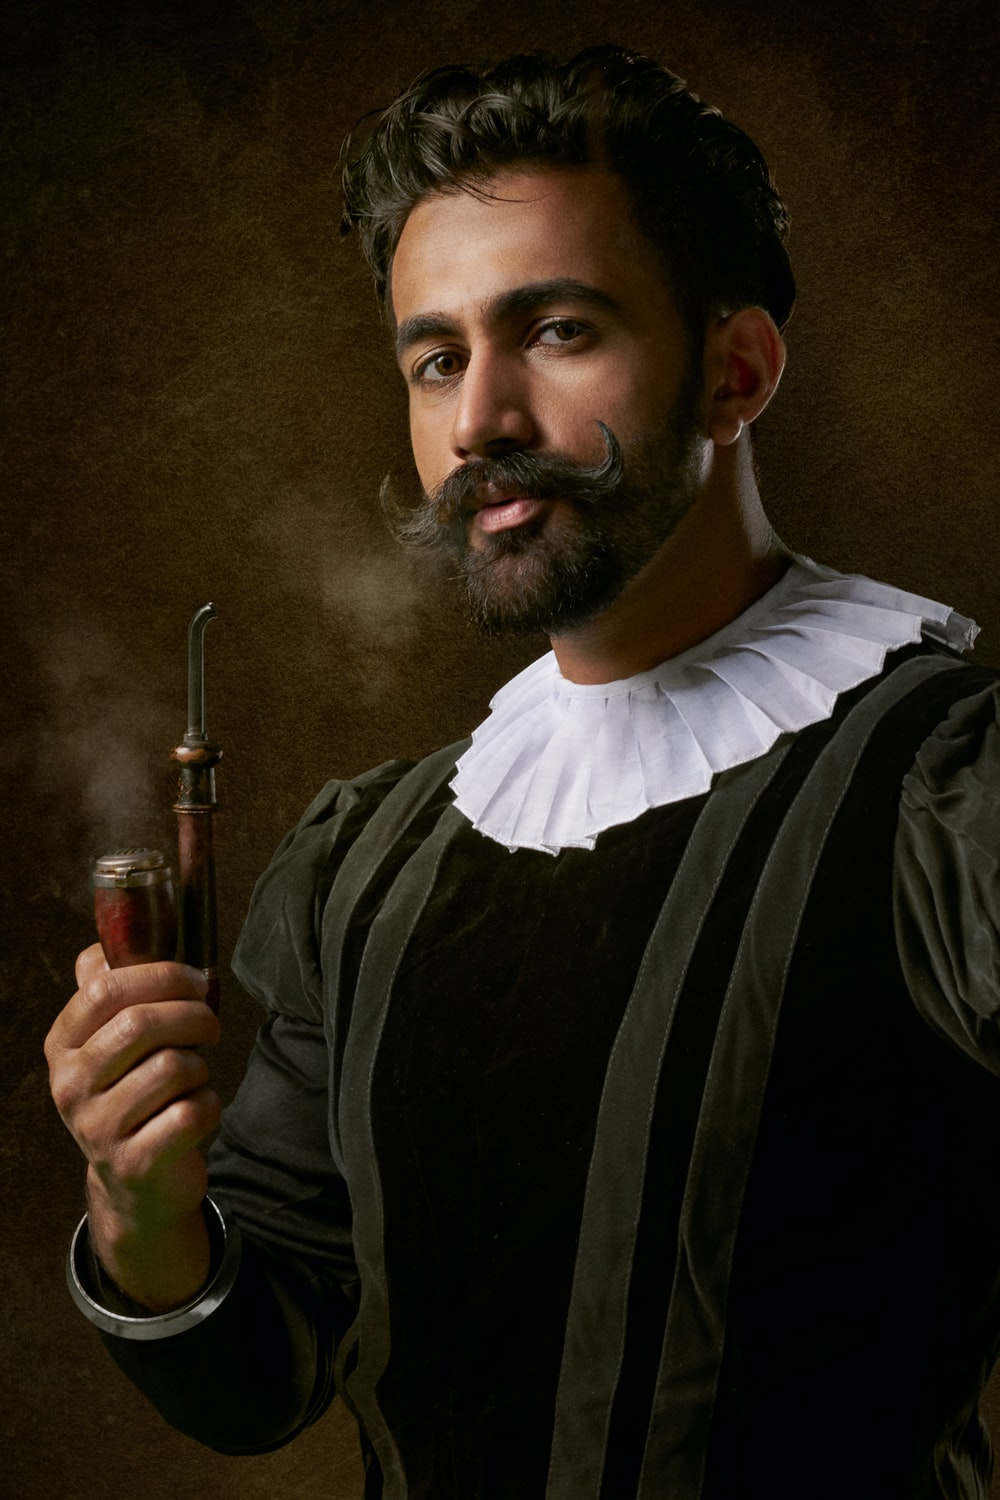 man wearing traditional clothes and holding smoking pipe